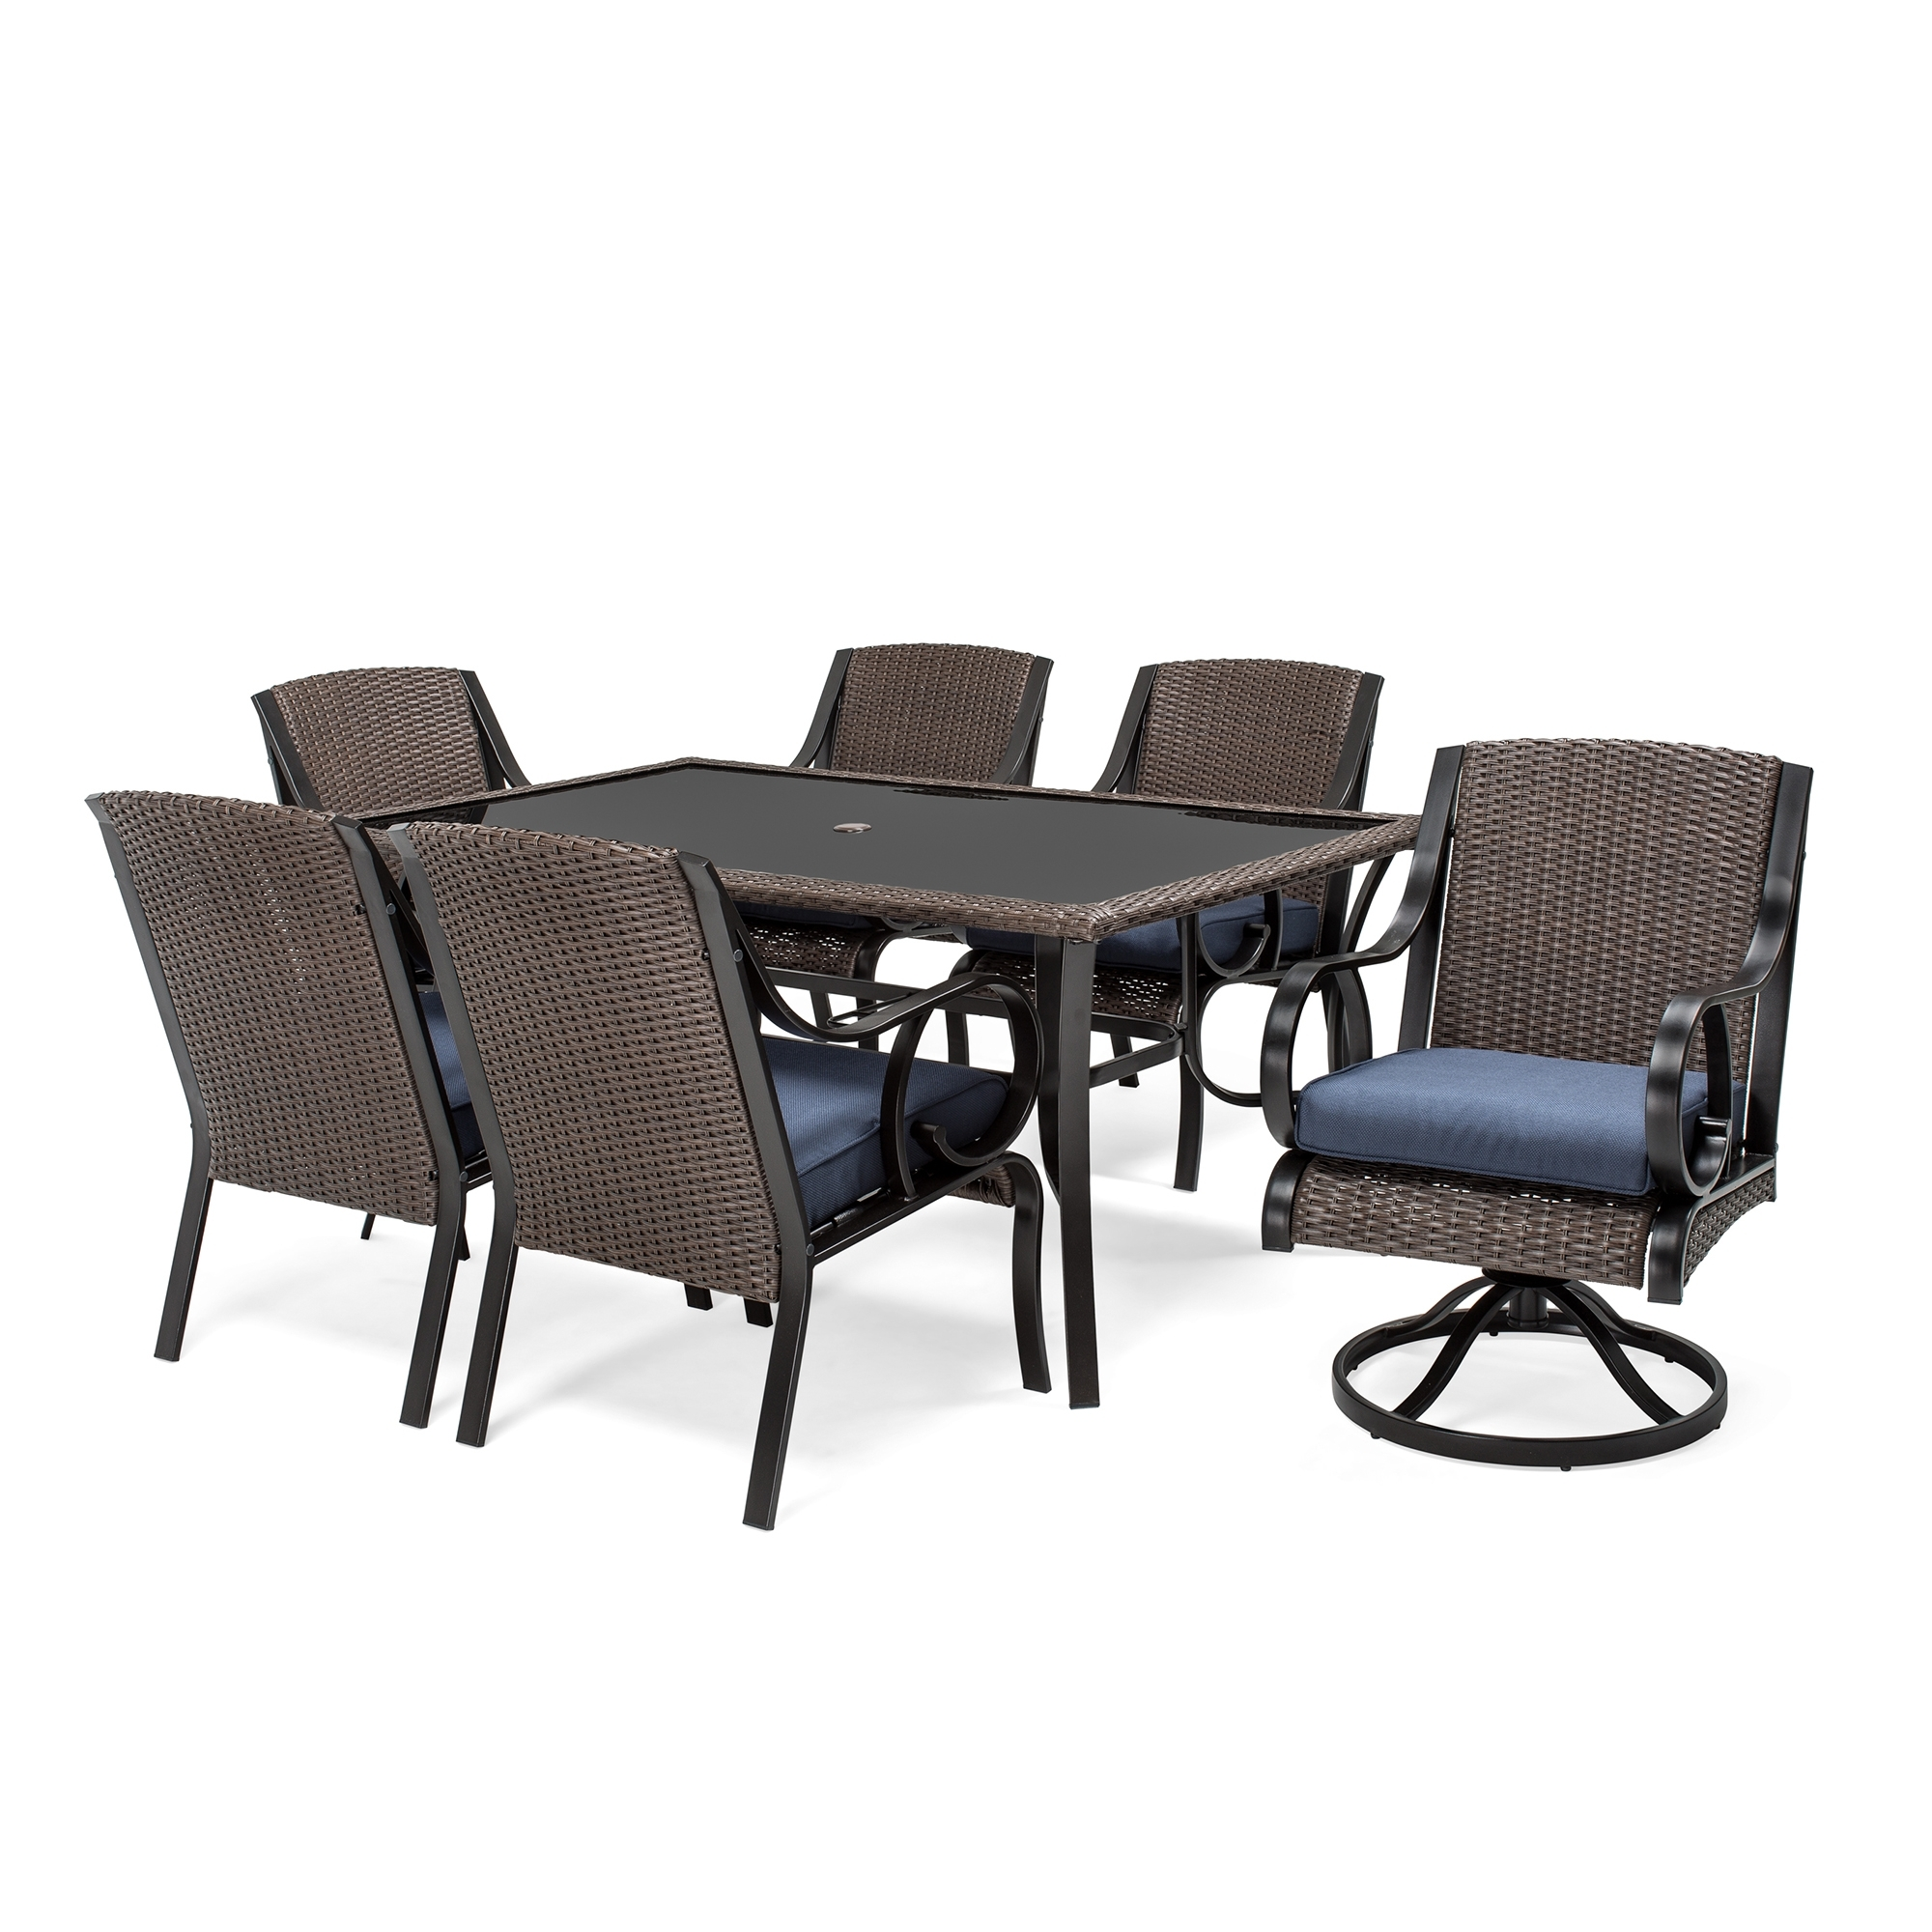 Well Known Lazy Boy Patio Conversation Sets Intended For Patio : Lazy Boy Coffee Tables Design Ideas Patio Furniture Sears (View 15 of 15)